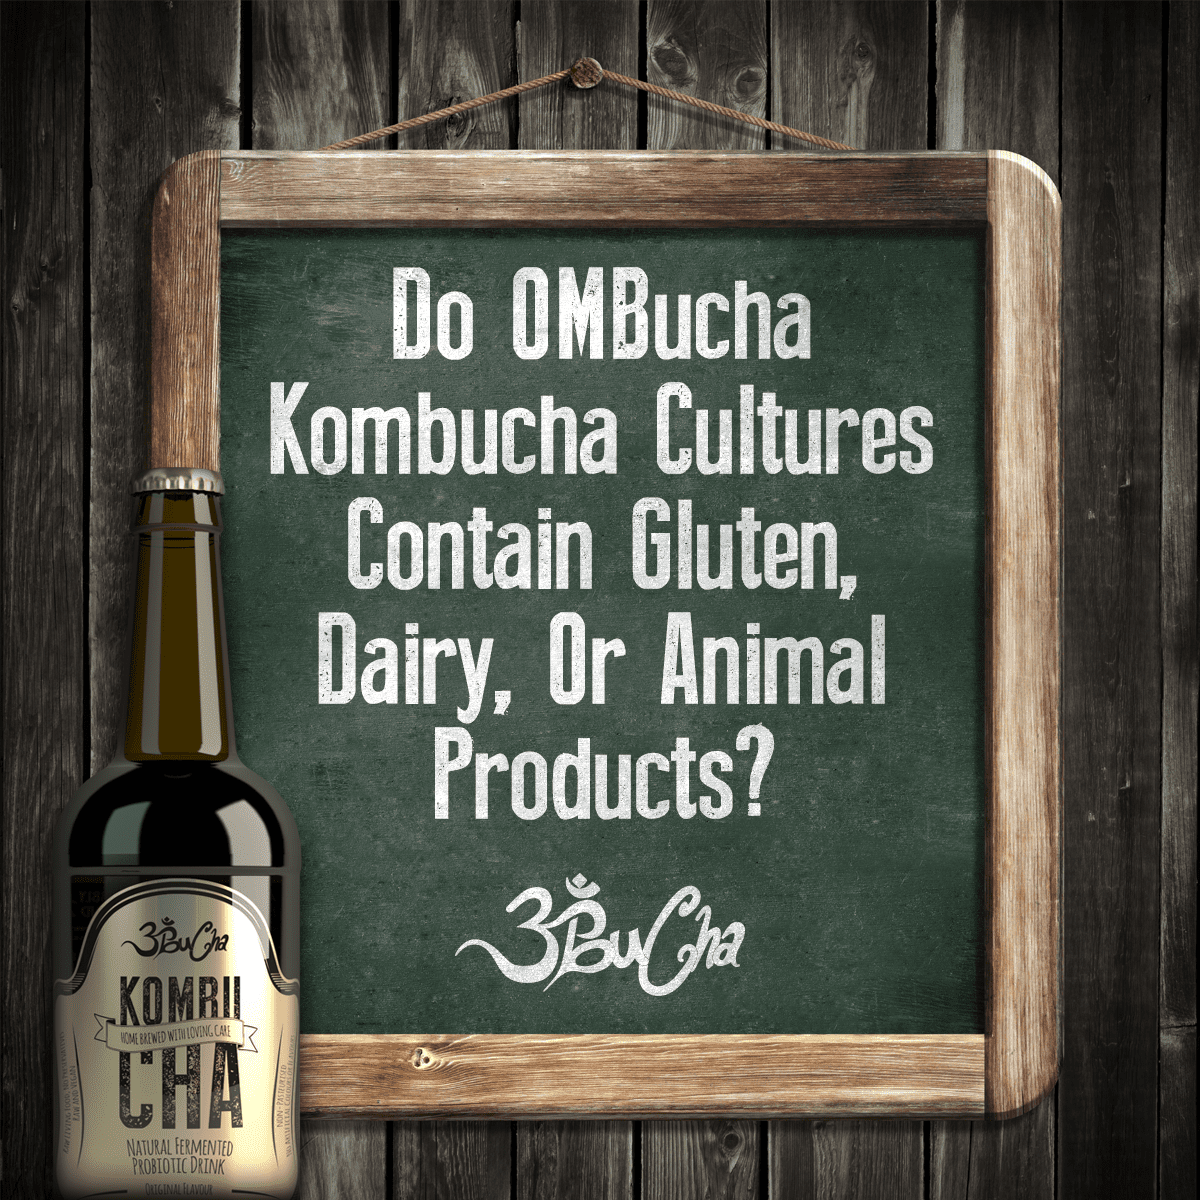 ombucha kombucha ingredients